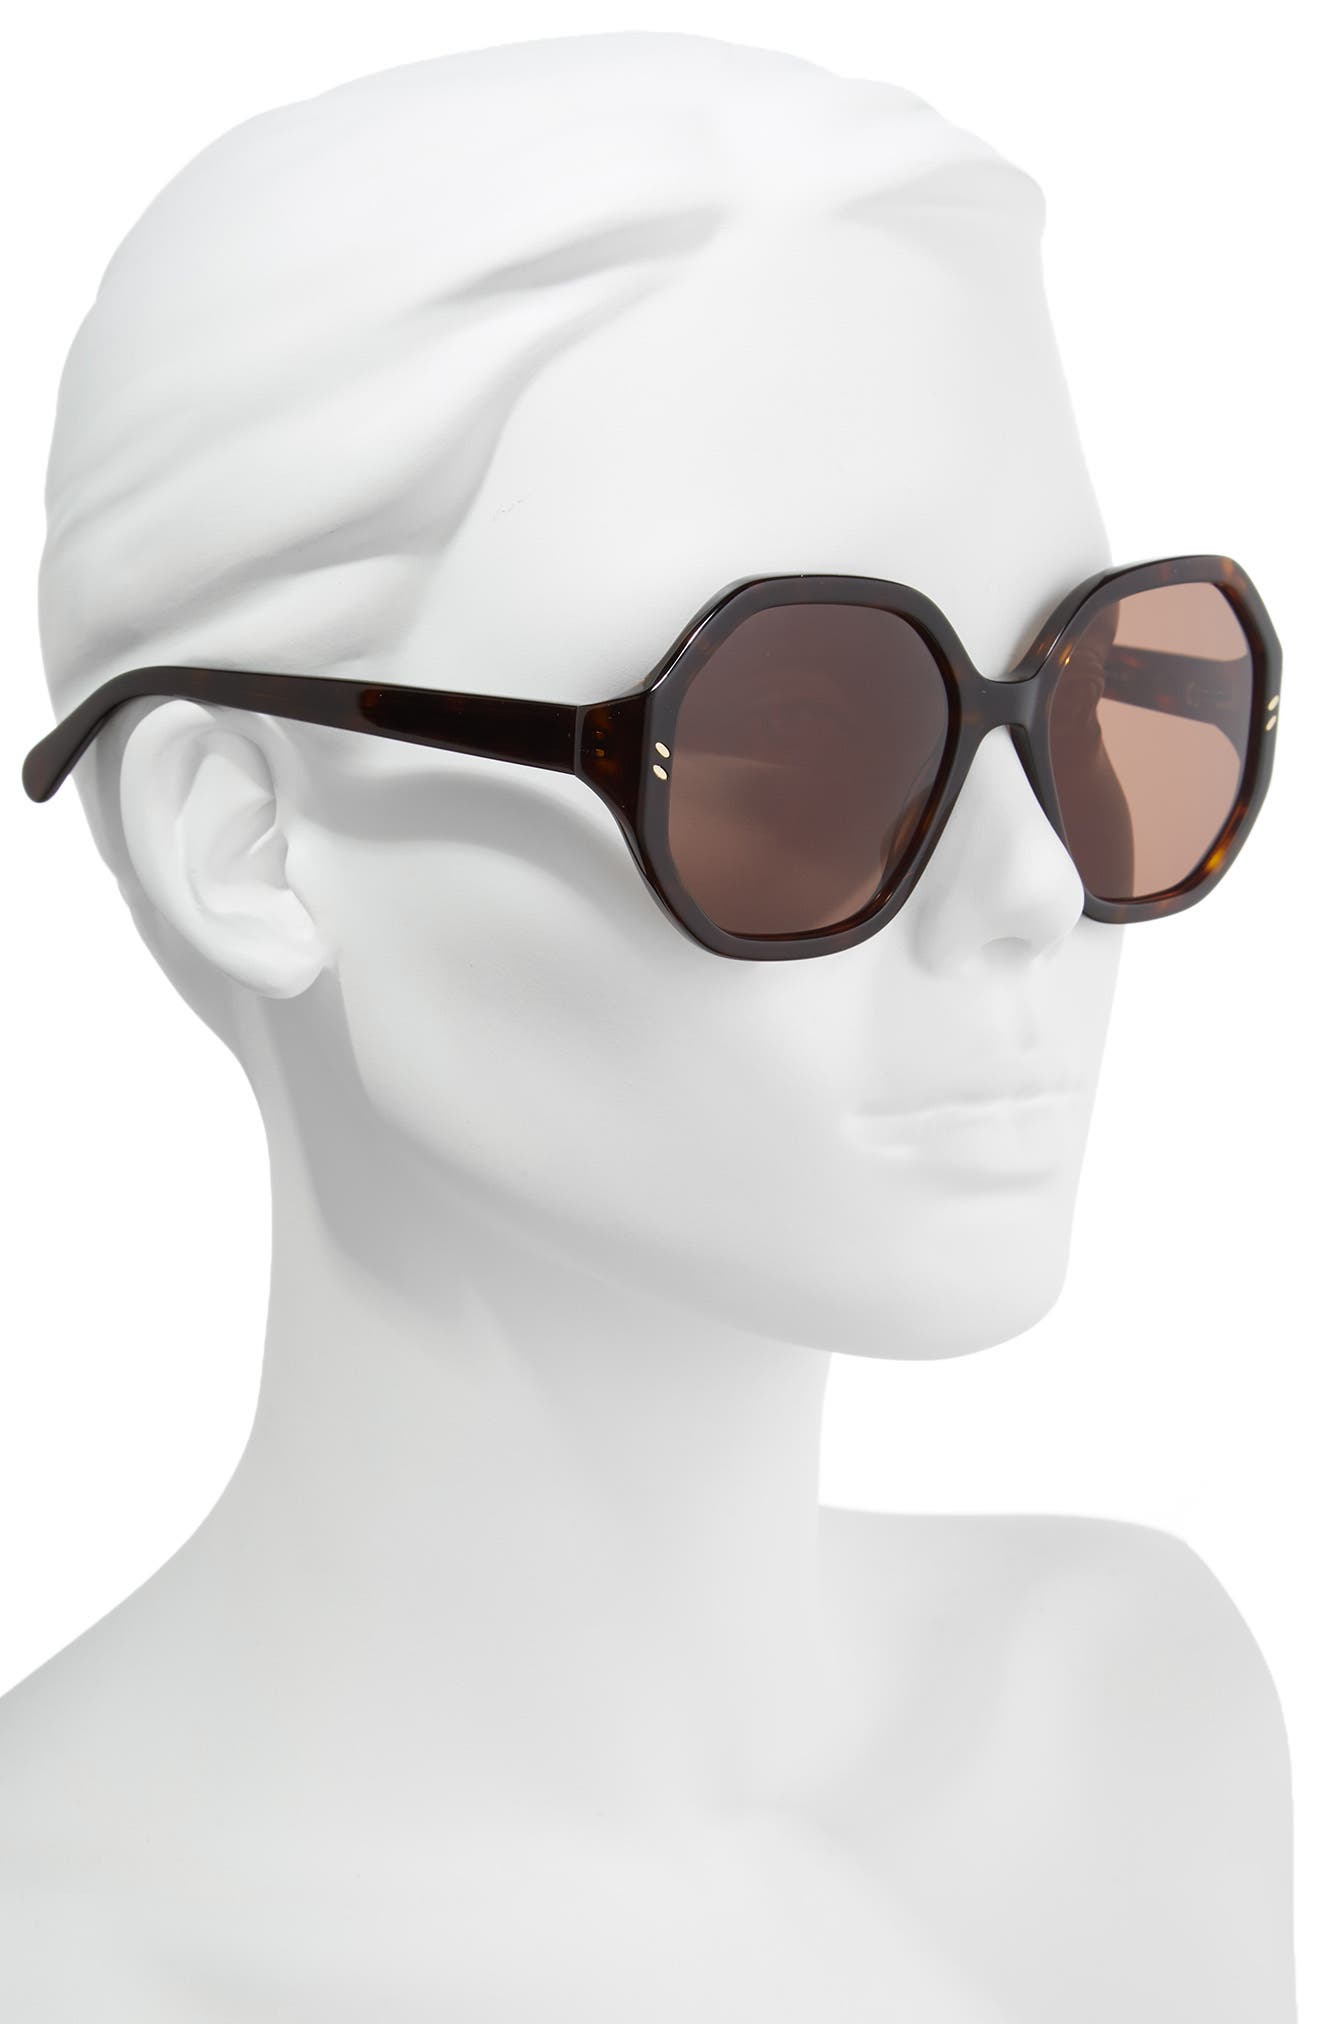 56mm Hexagonal Sunglasses,                             Alternate thumbnail 2, color,                             Dark Havana